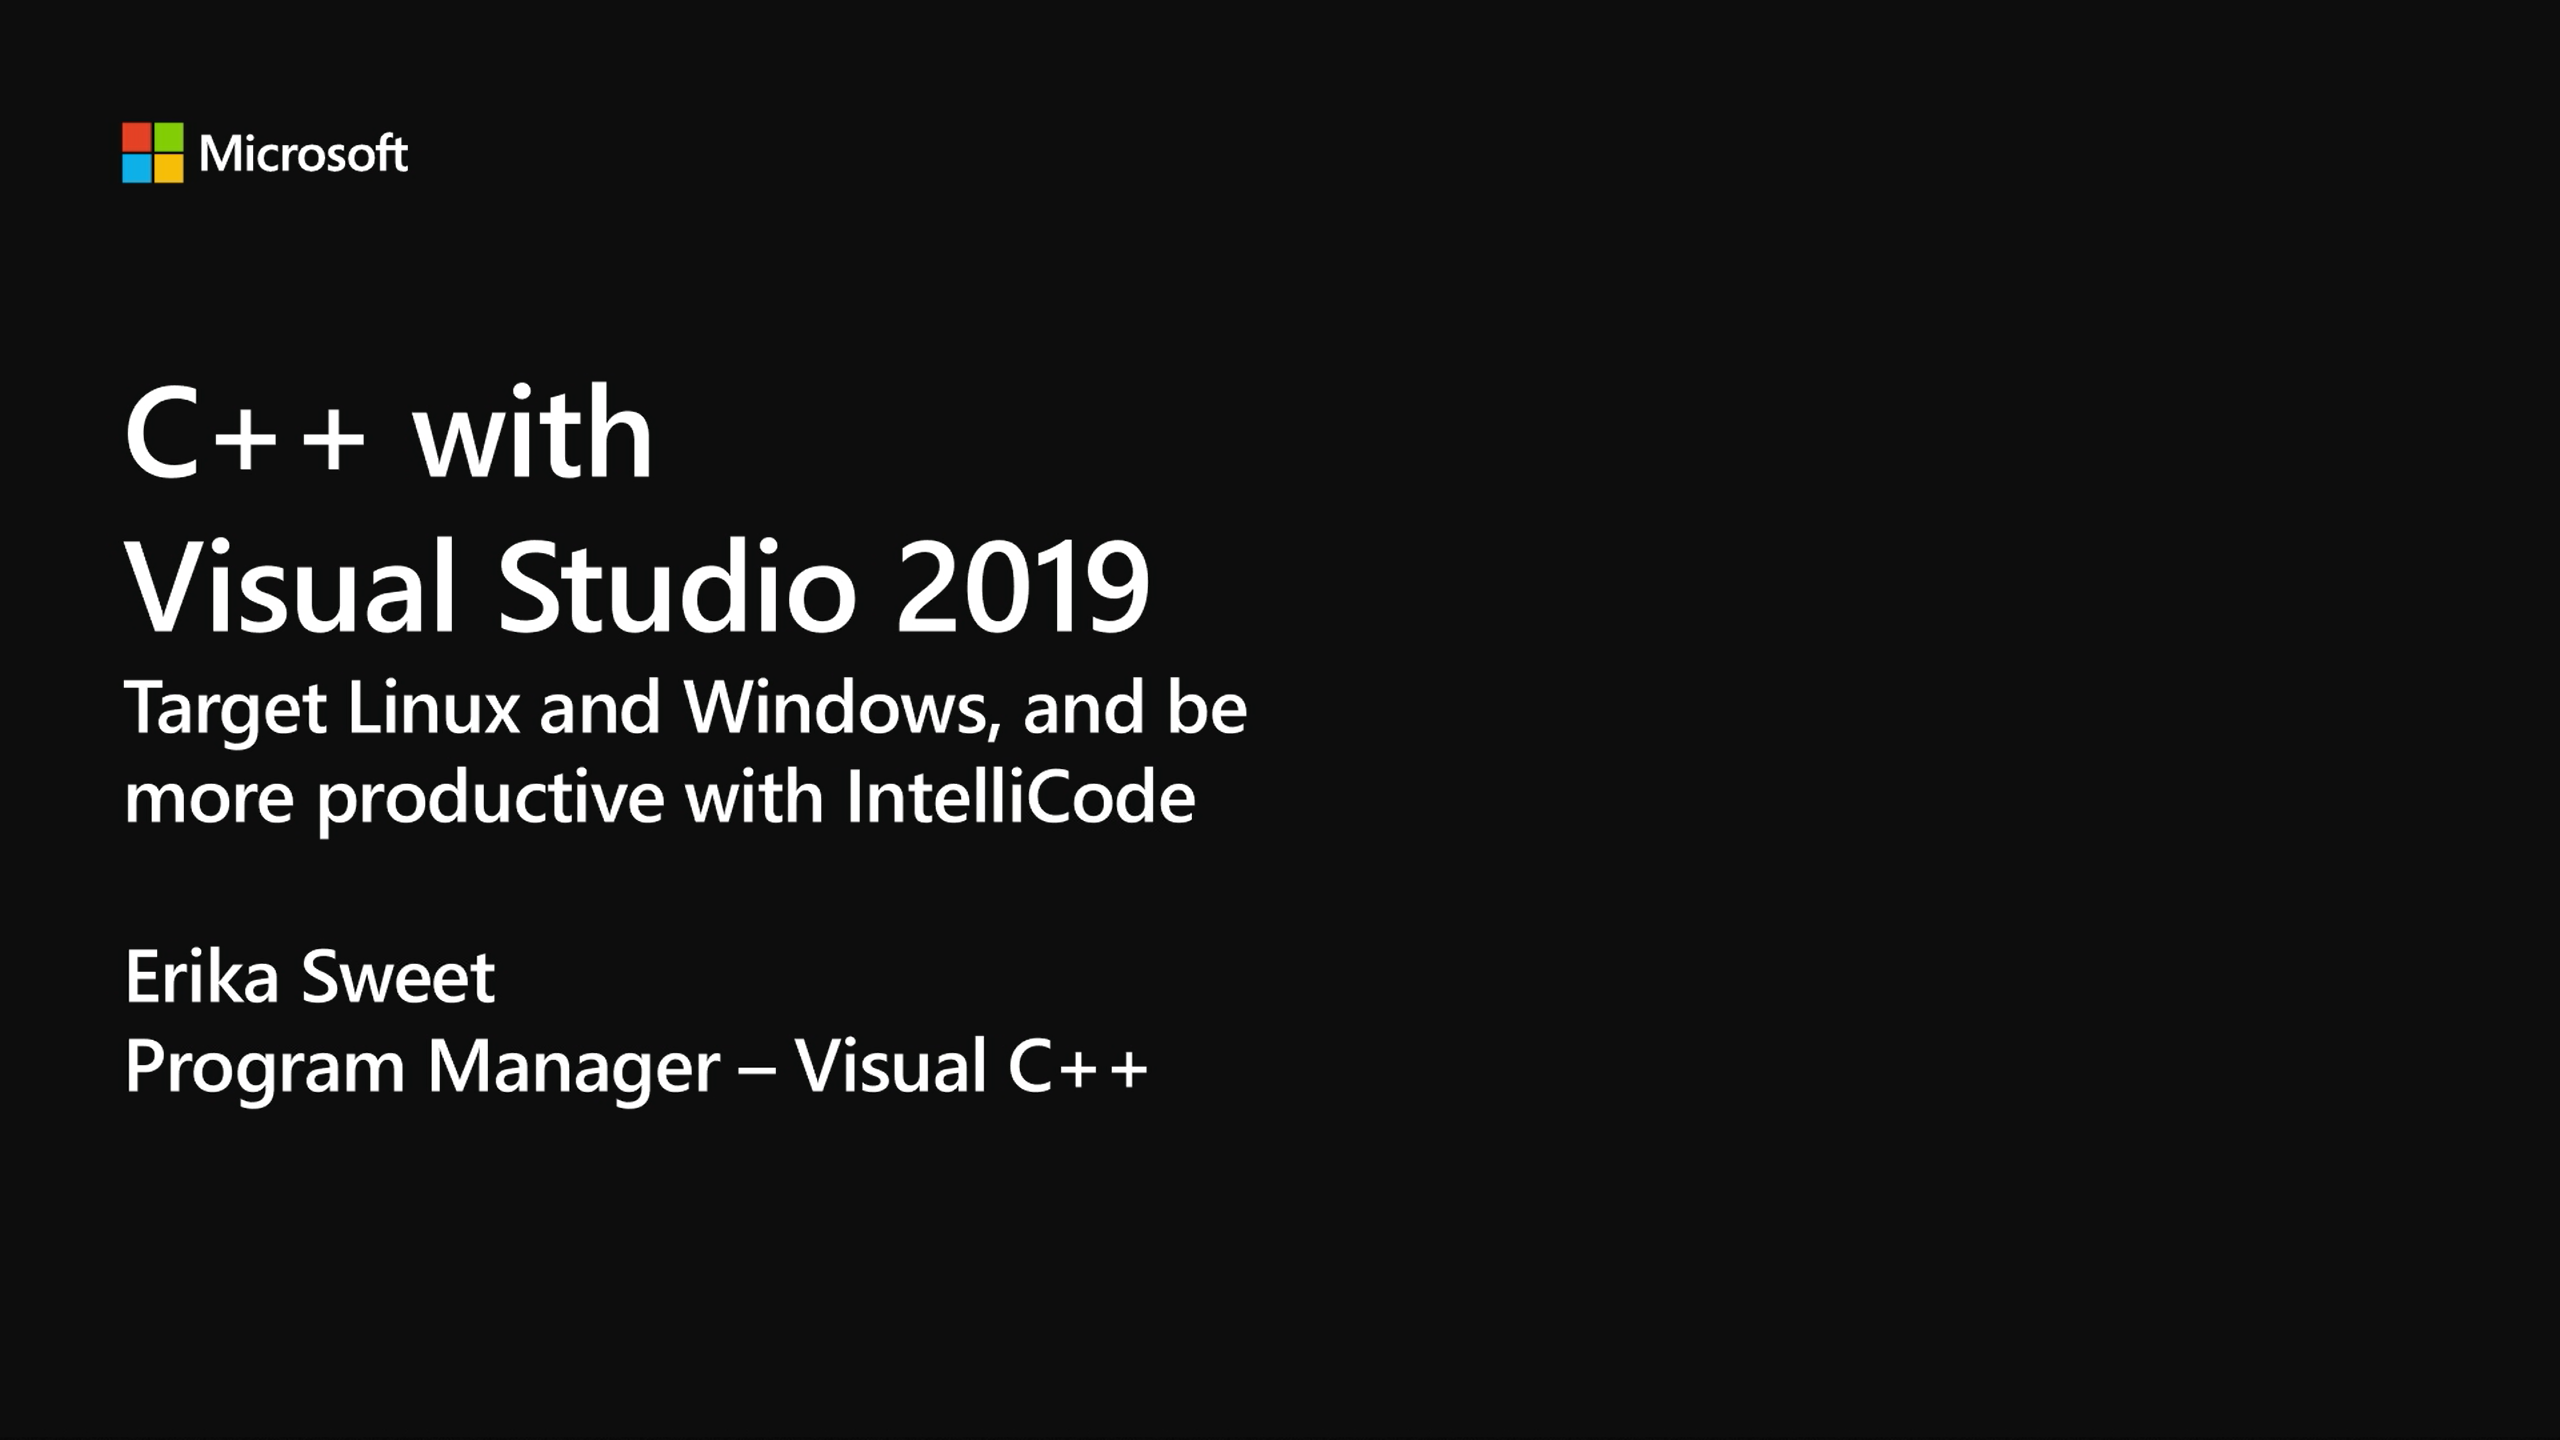 C++ with Visual Studio 2019: target Linux and Windows, and be more productive with IntelliCode